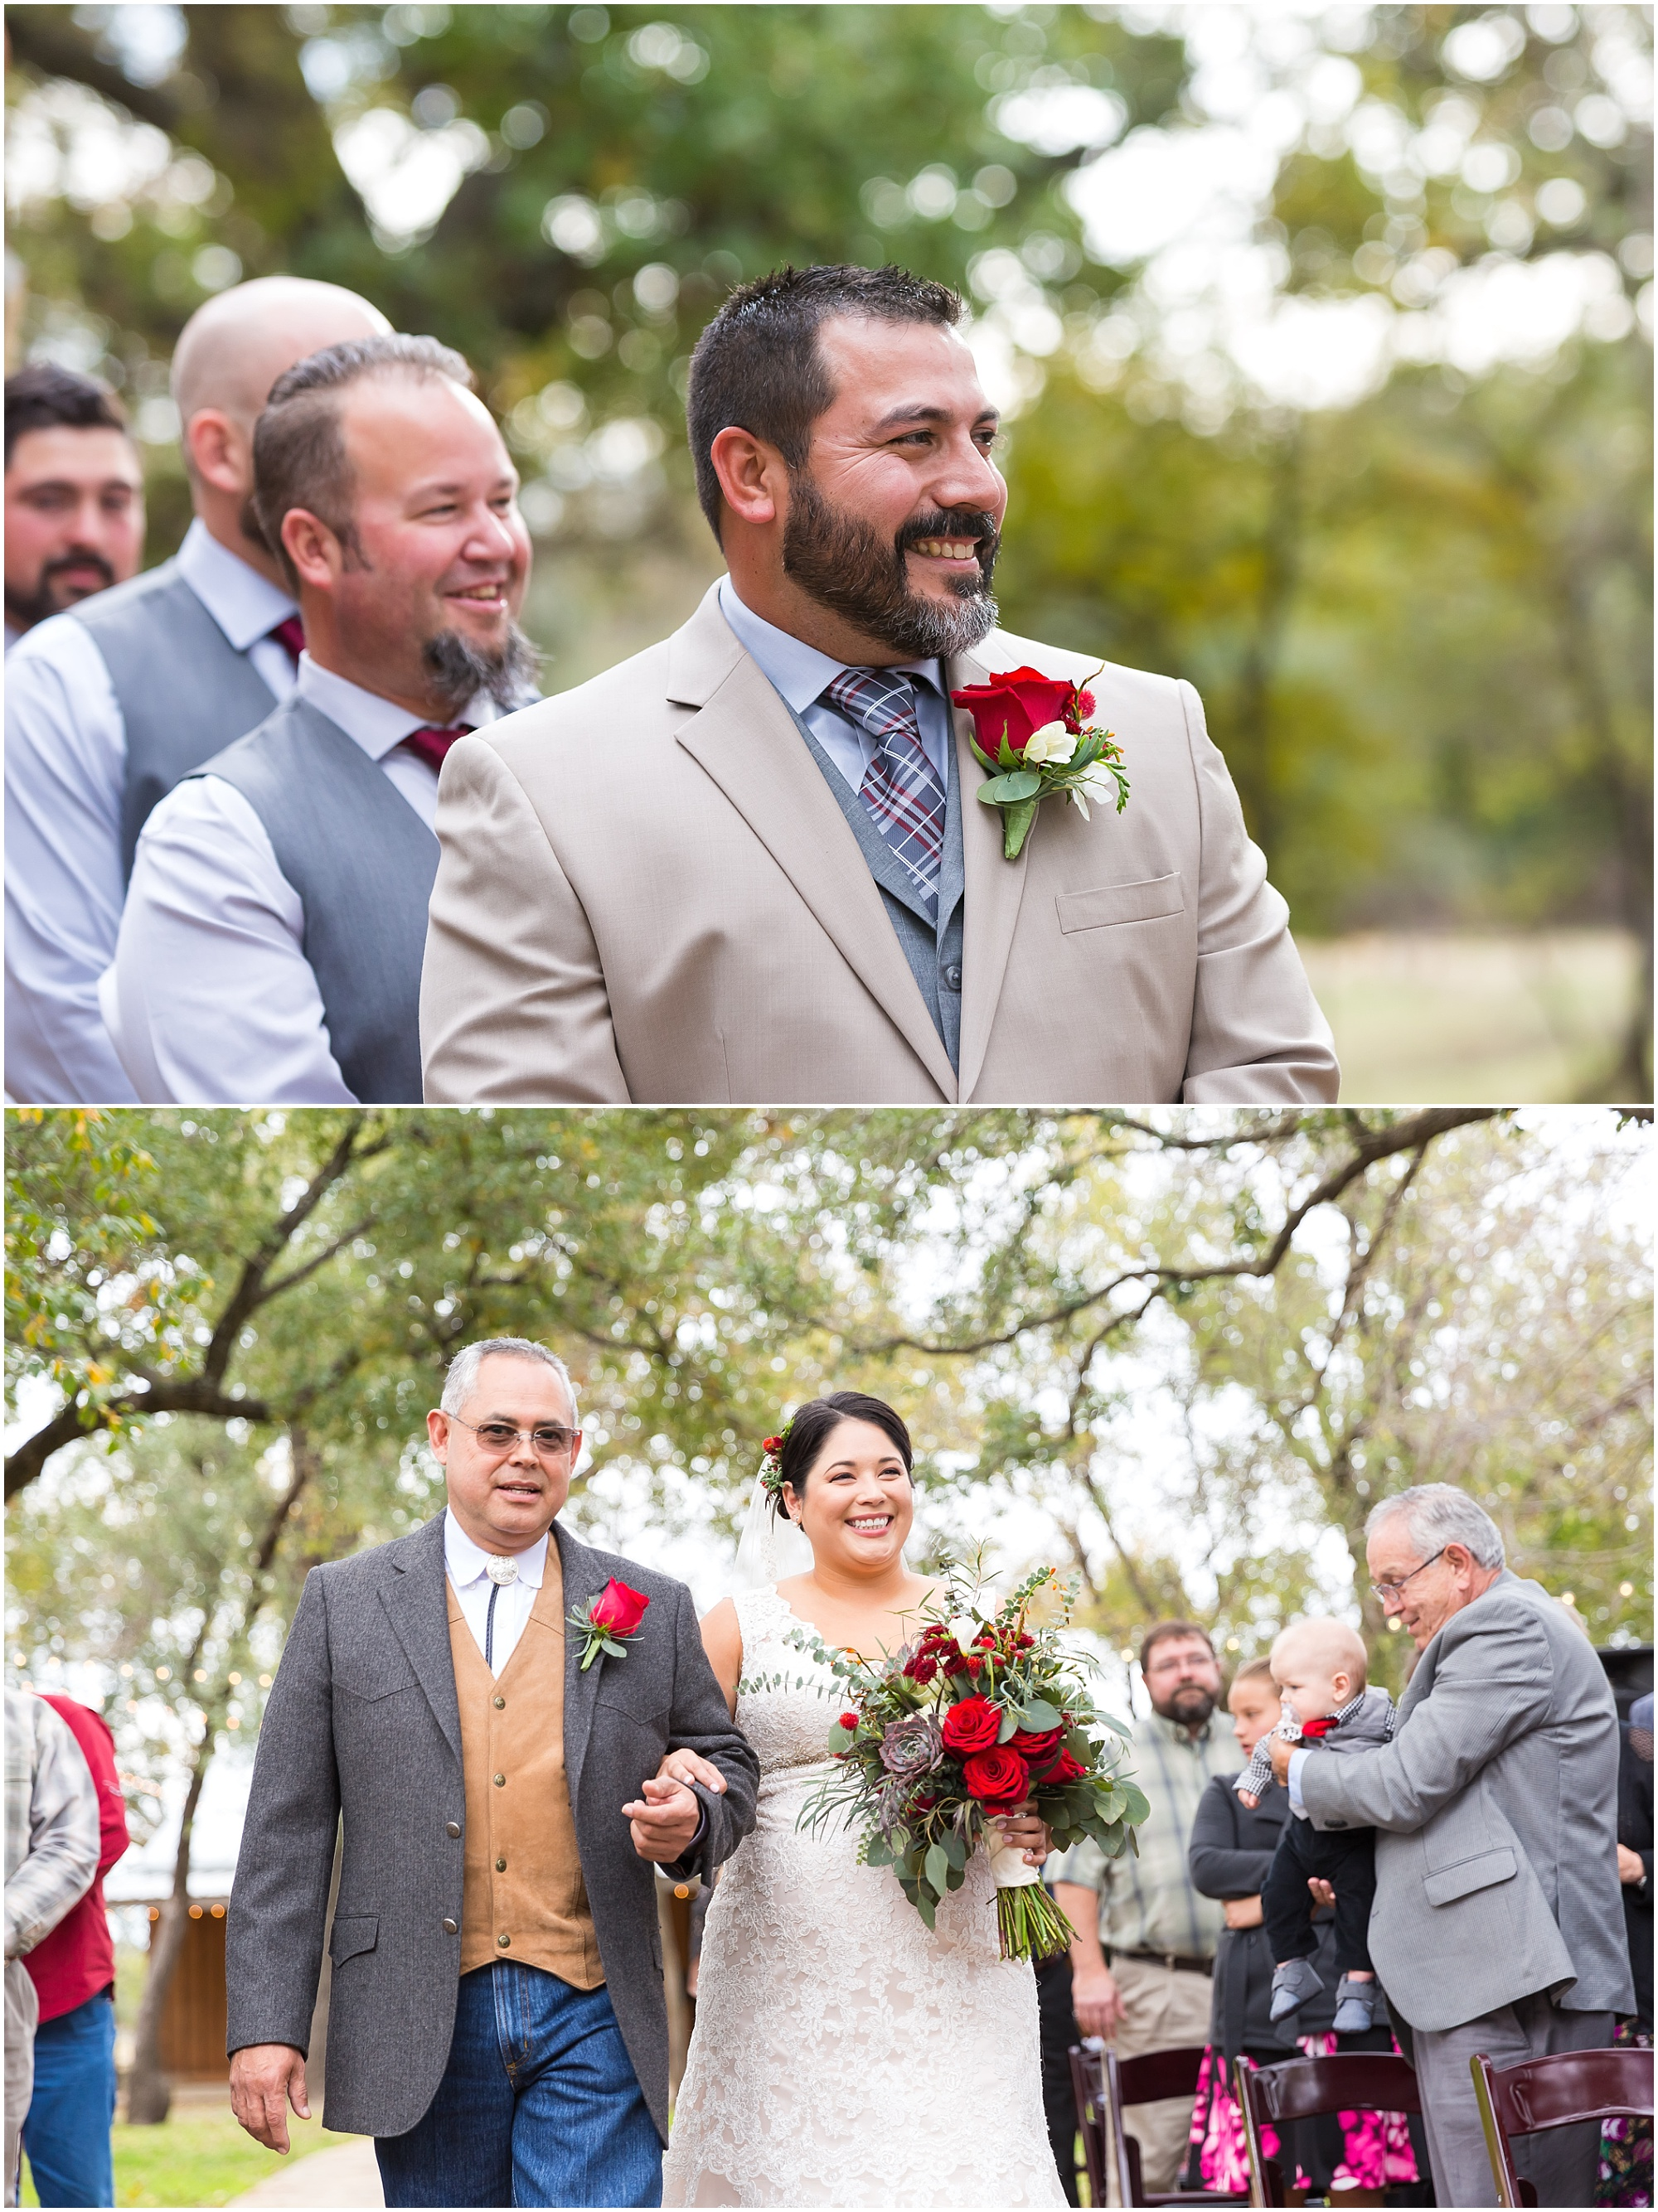 Groom smiles as his bride comes down the aisle - Dove Creek Ranch in Dublin, Texas - Jason & Melaina Photography - www.jasonandmelaina.com